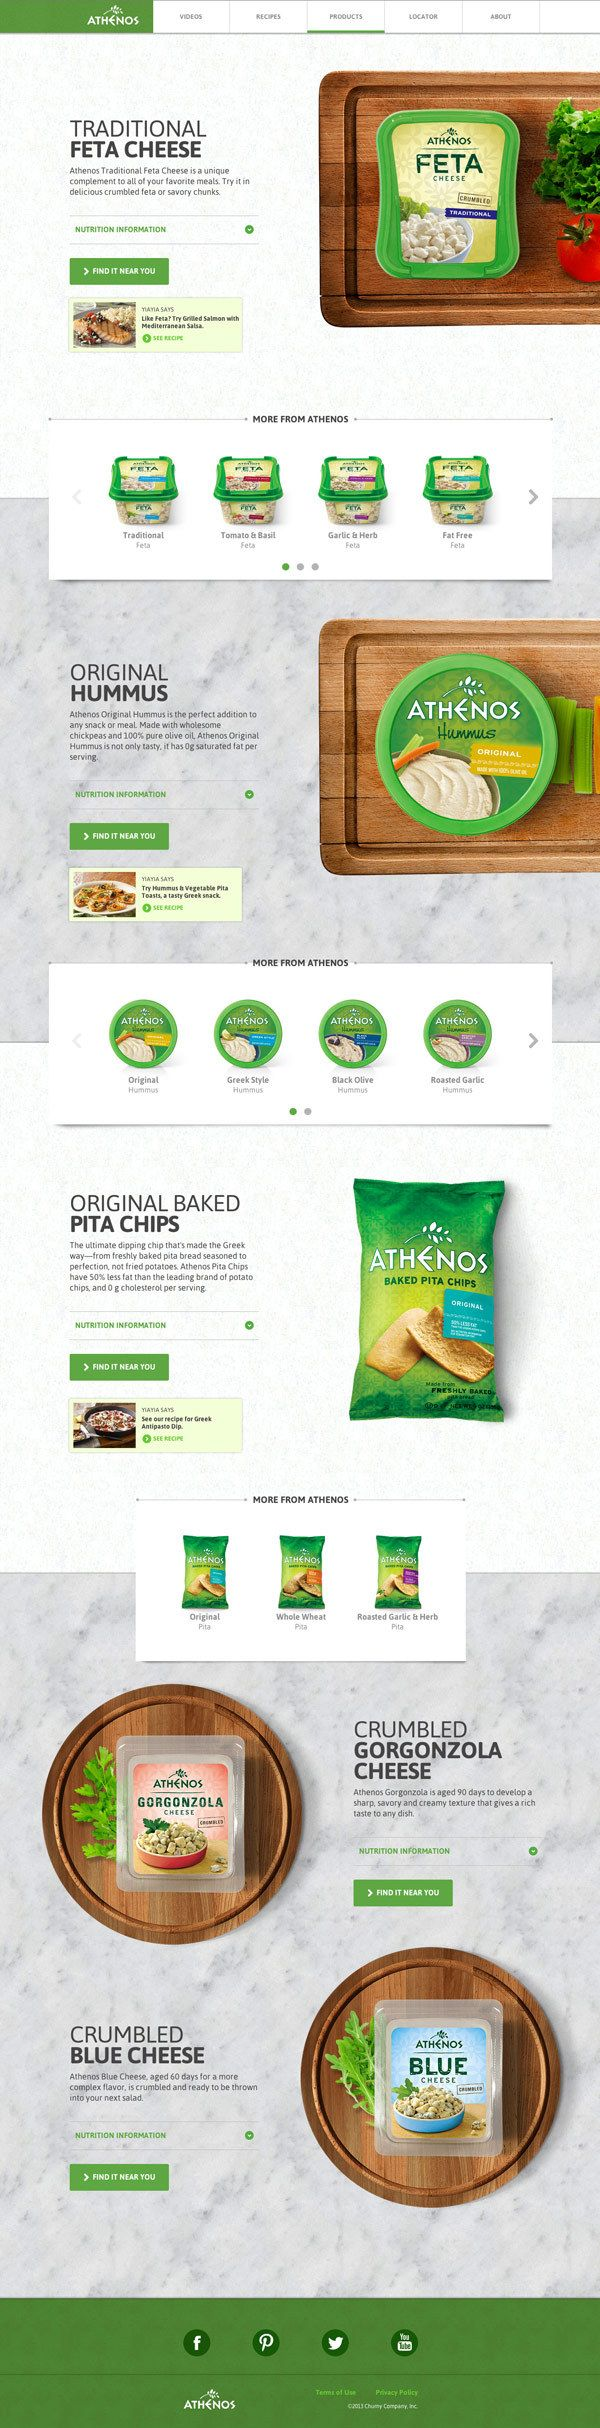 Athenos by Jen Lu, via Behance | Greenich, environmental, healthiness is what has been potrayed by the very green colour that surrounds the space. Pure nature objects like woods are what encourages the aspect of gratitude.